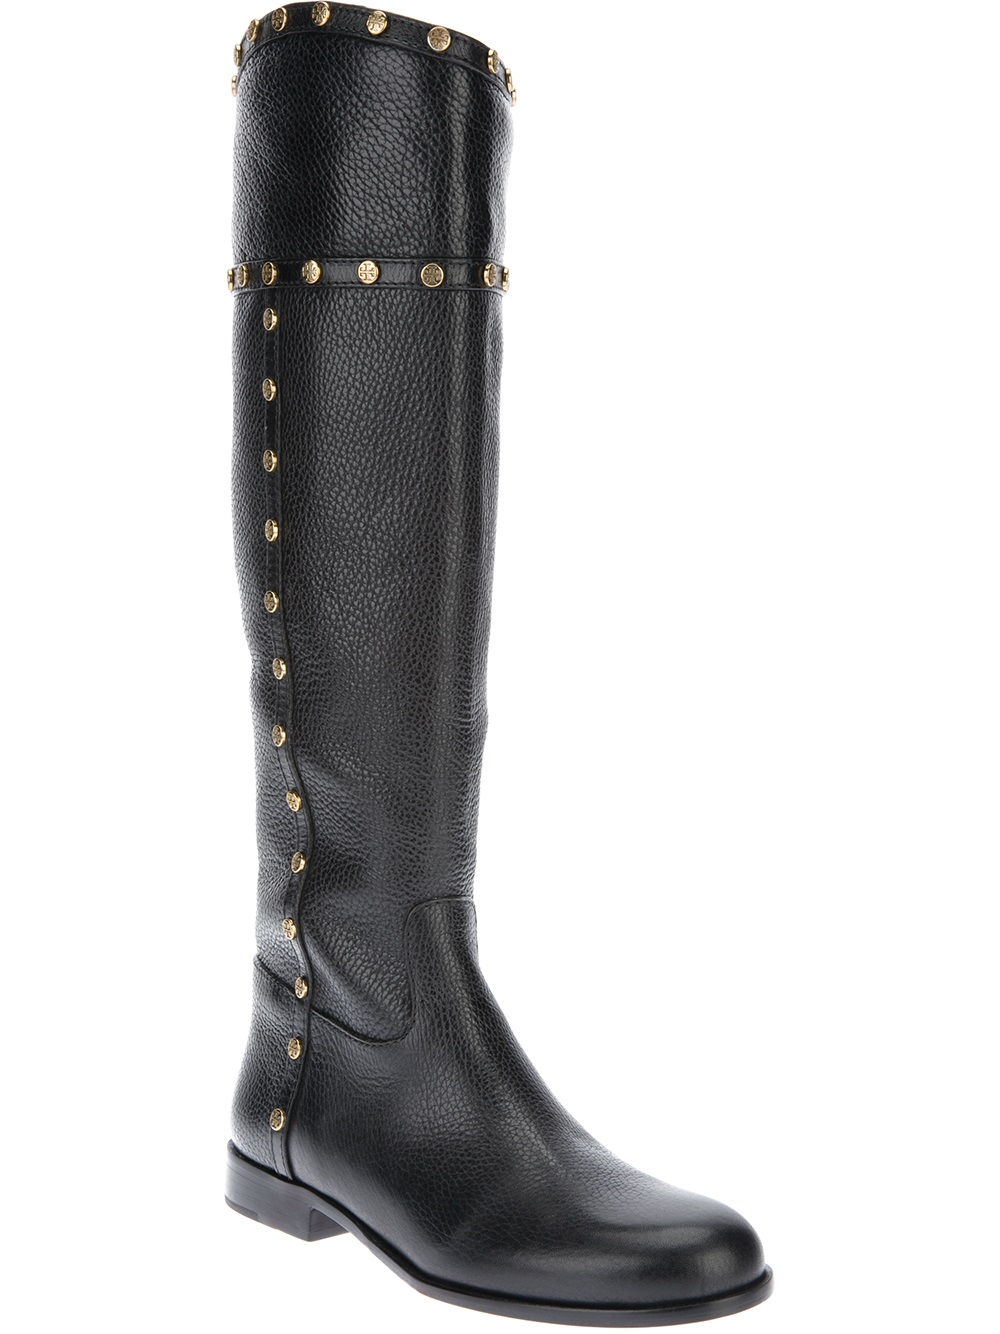 burch studded knee high boot in black lyst